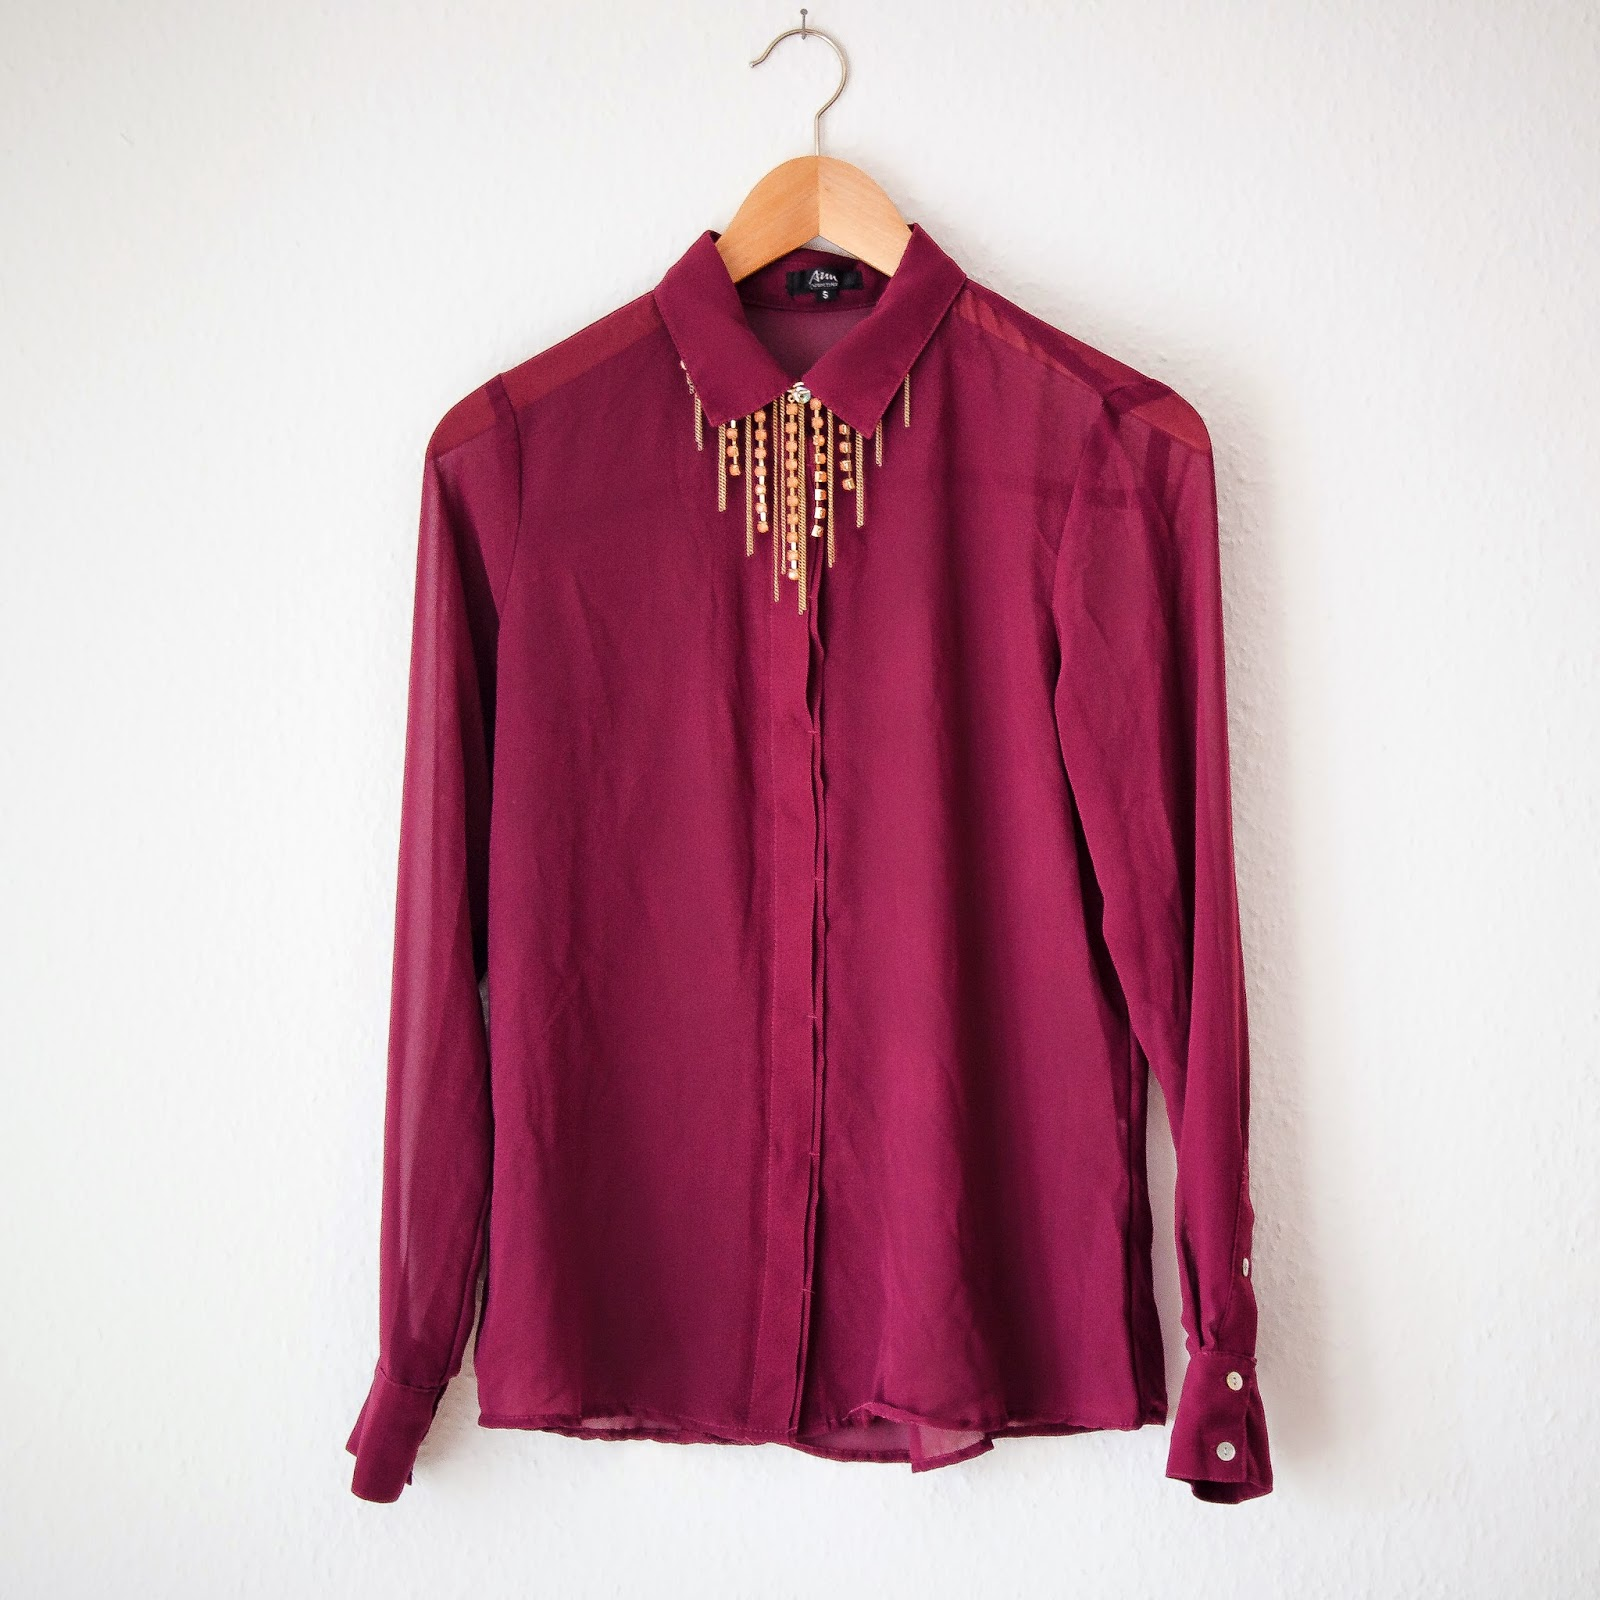 BORDEAUX BLOUSE AND GOLD CHAIN PRIZMAHFASHION